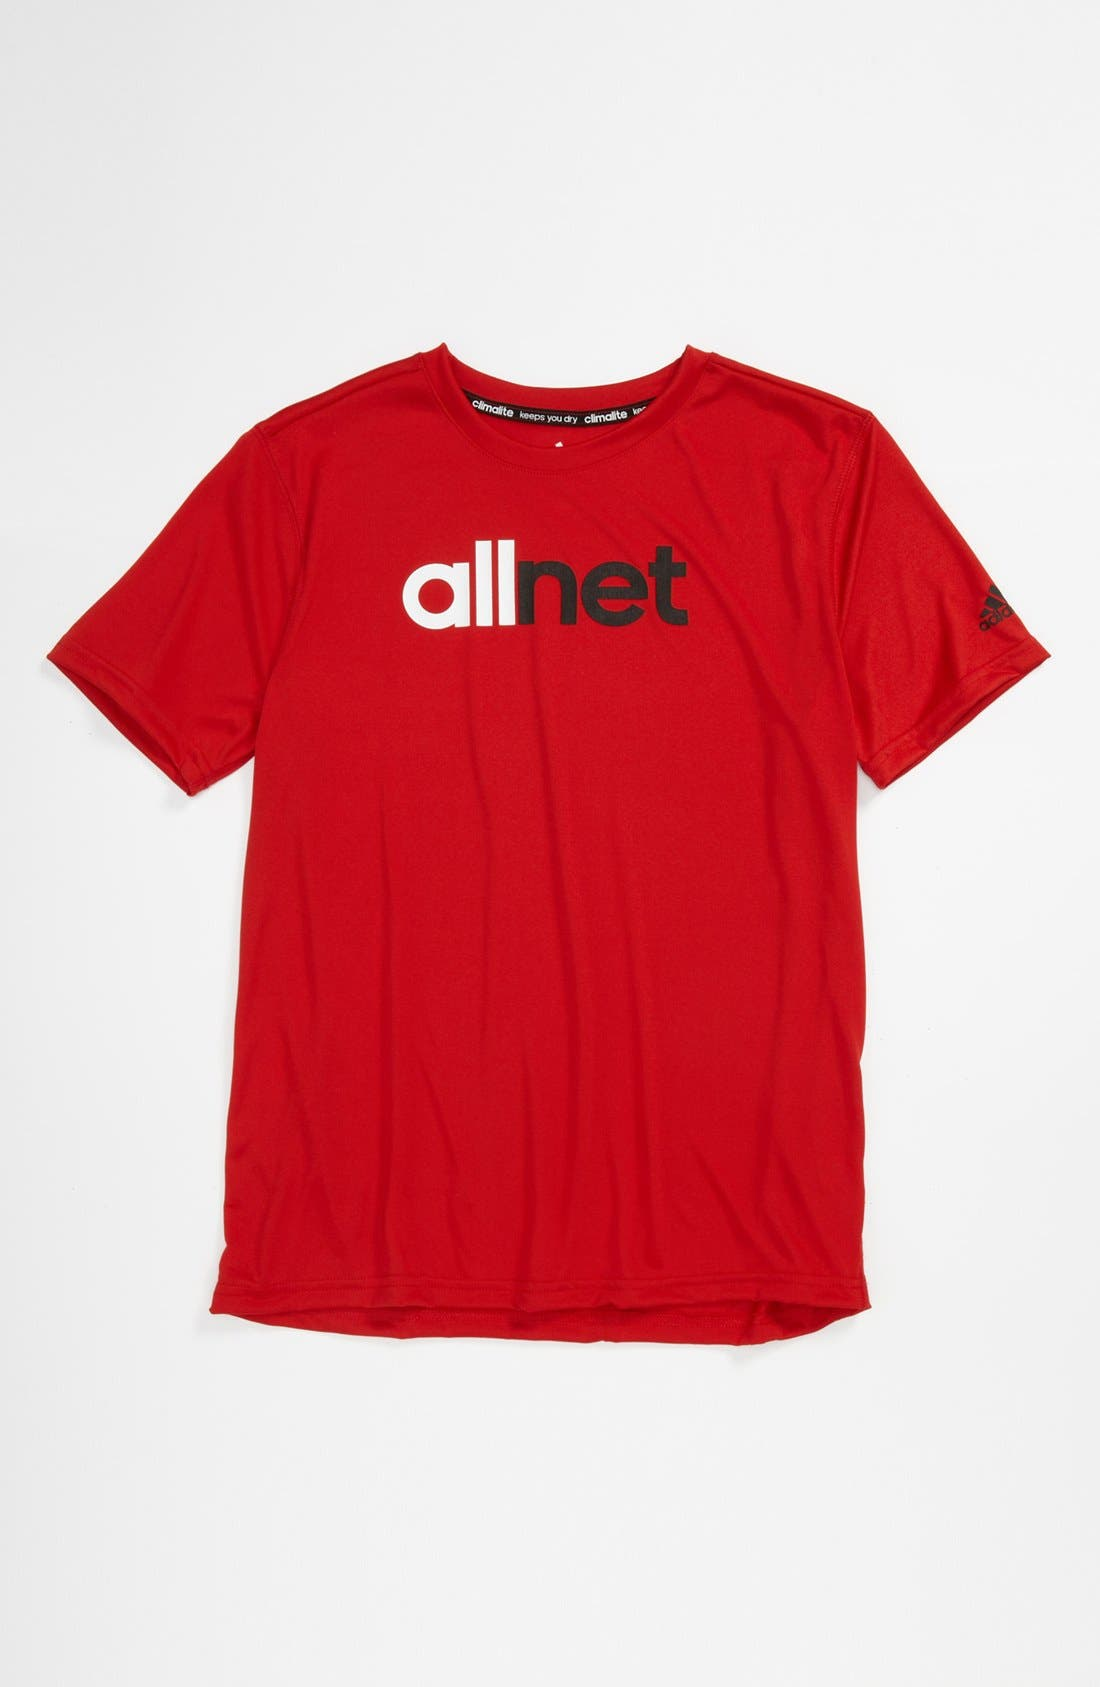 Alternate Image 1 Selected - adidas 'All Net' T-shirt (Big Boys)